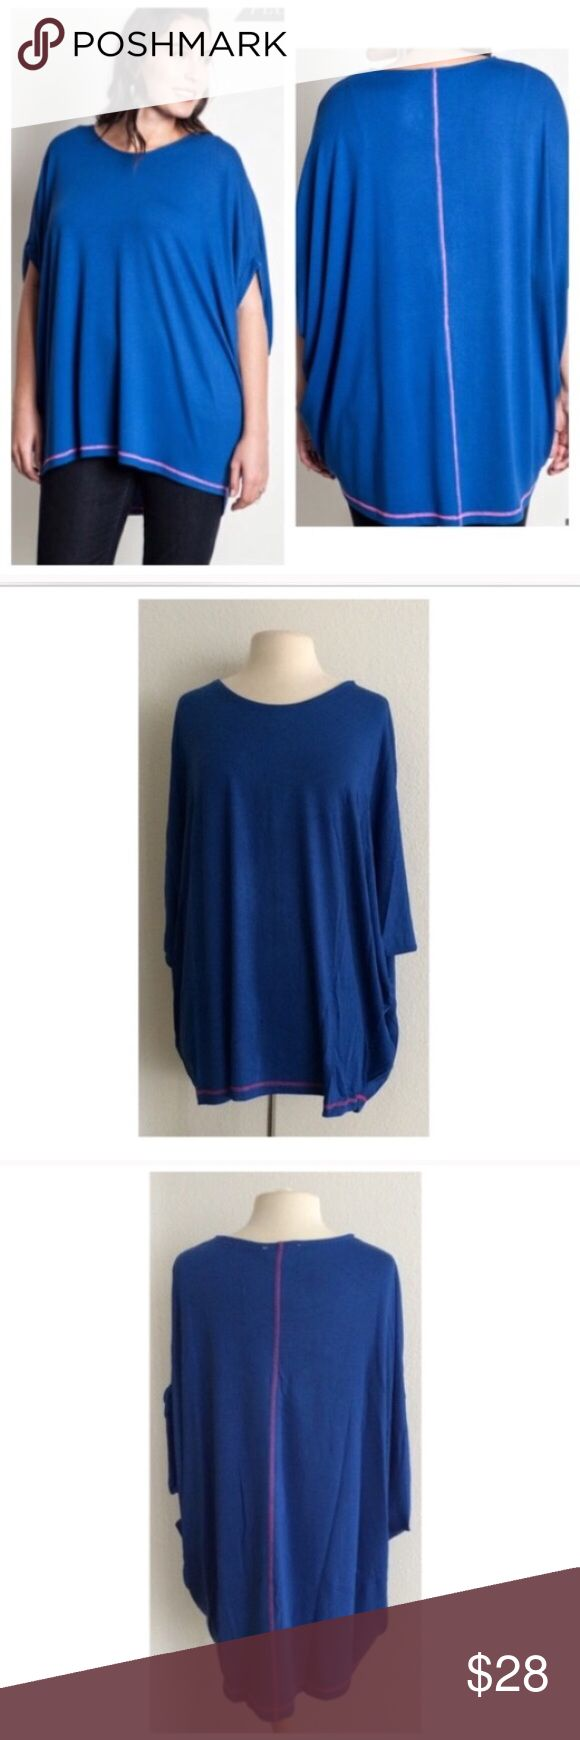 "(Plus) Blue top Blue batwing top  Length- approx 32""  Materials- 65% cotton/ 35% polyester. This is a pretty thick top and it is extremely versatile. It can be dressed up or dressed down. Runs slightly large.  Availability- XL•1x • 3•2 ⭐️This item is brand new from manufacturer without tags.  NO TRADES Price is firm unless bundled Ask about bundle discounts Tops"